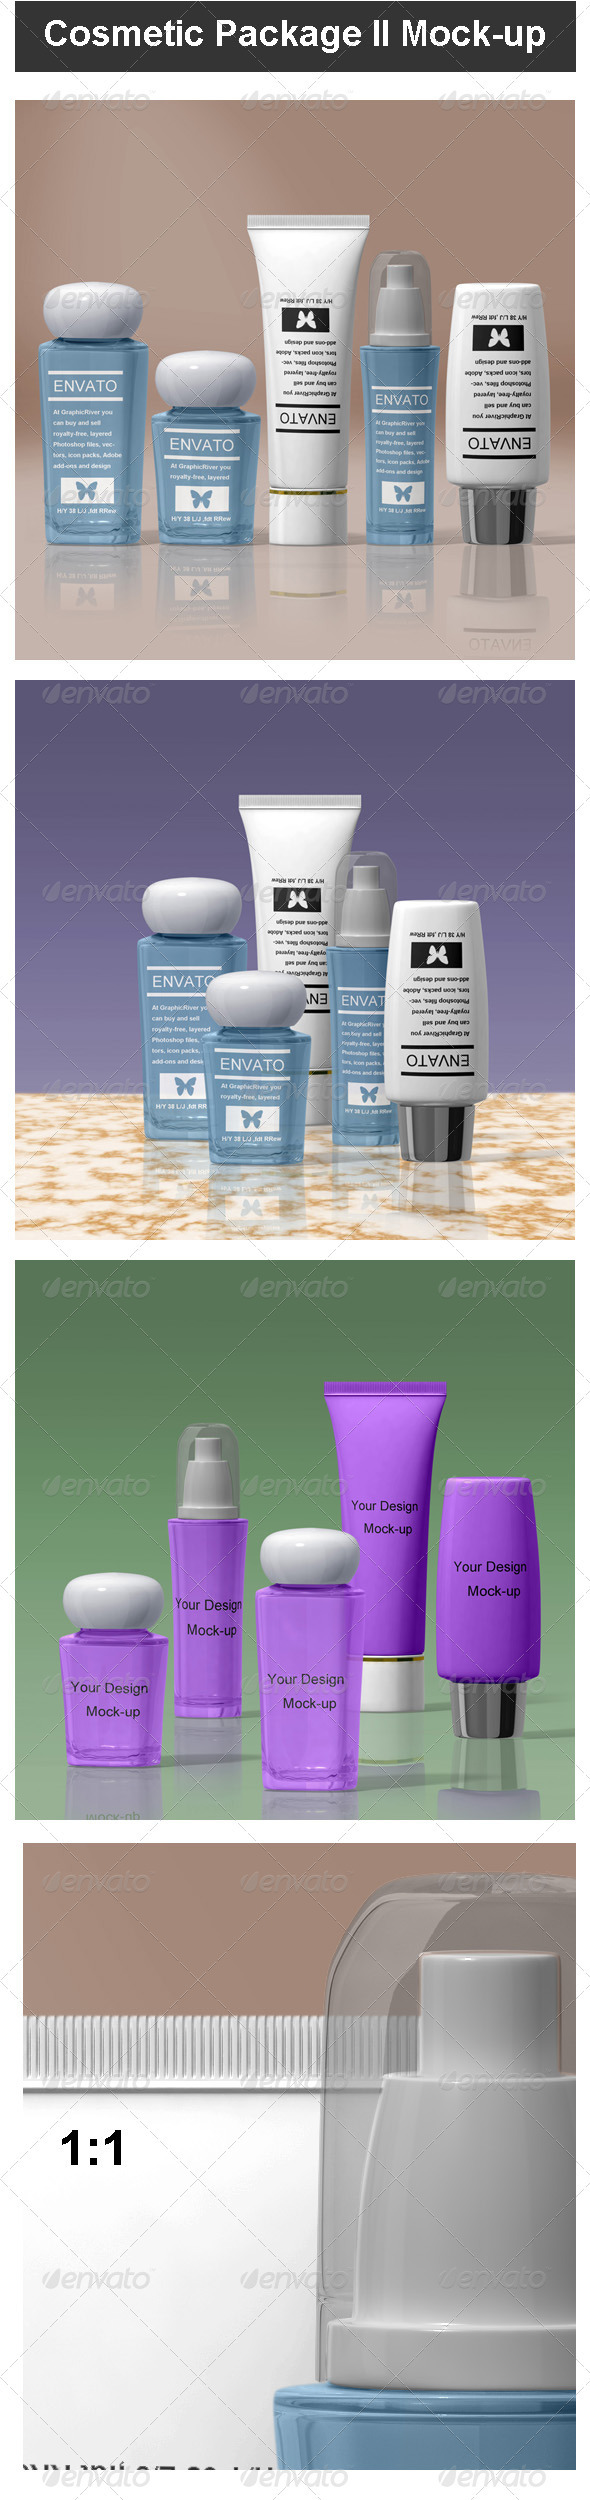 GraphicRiver Cosmetic Package II Mock-up 3571806